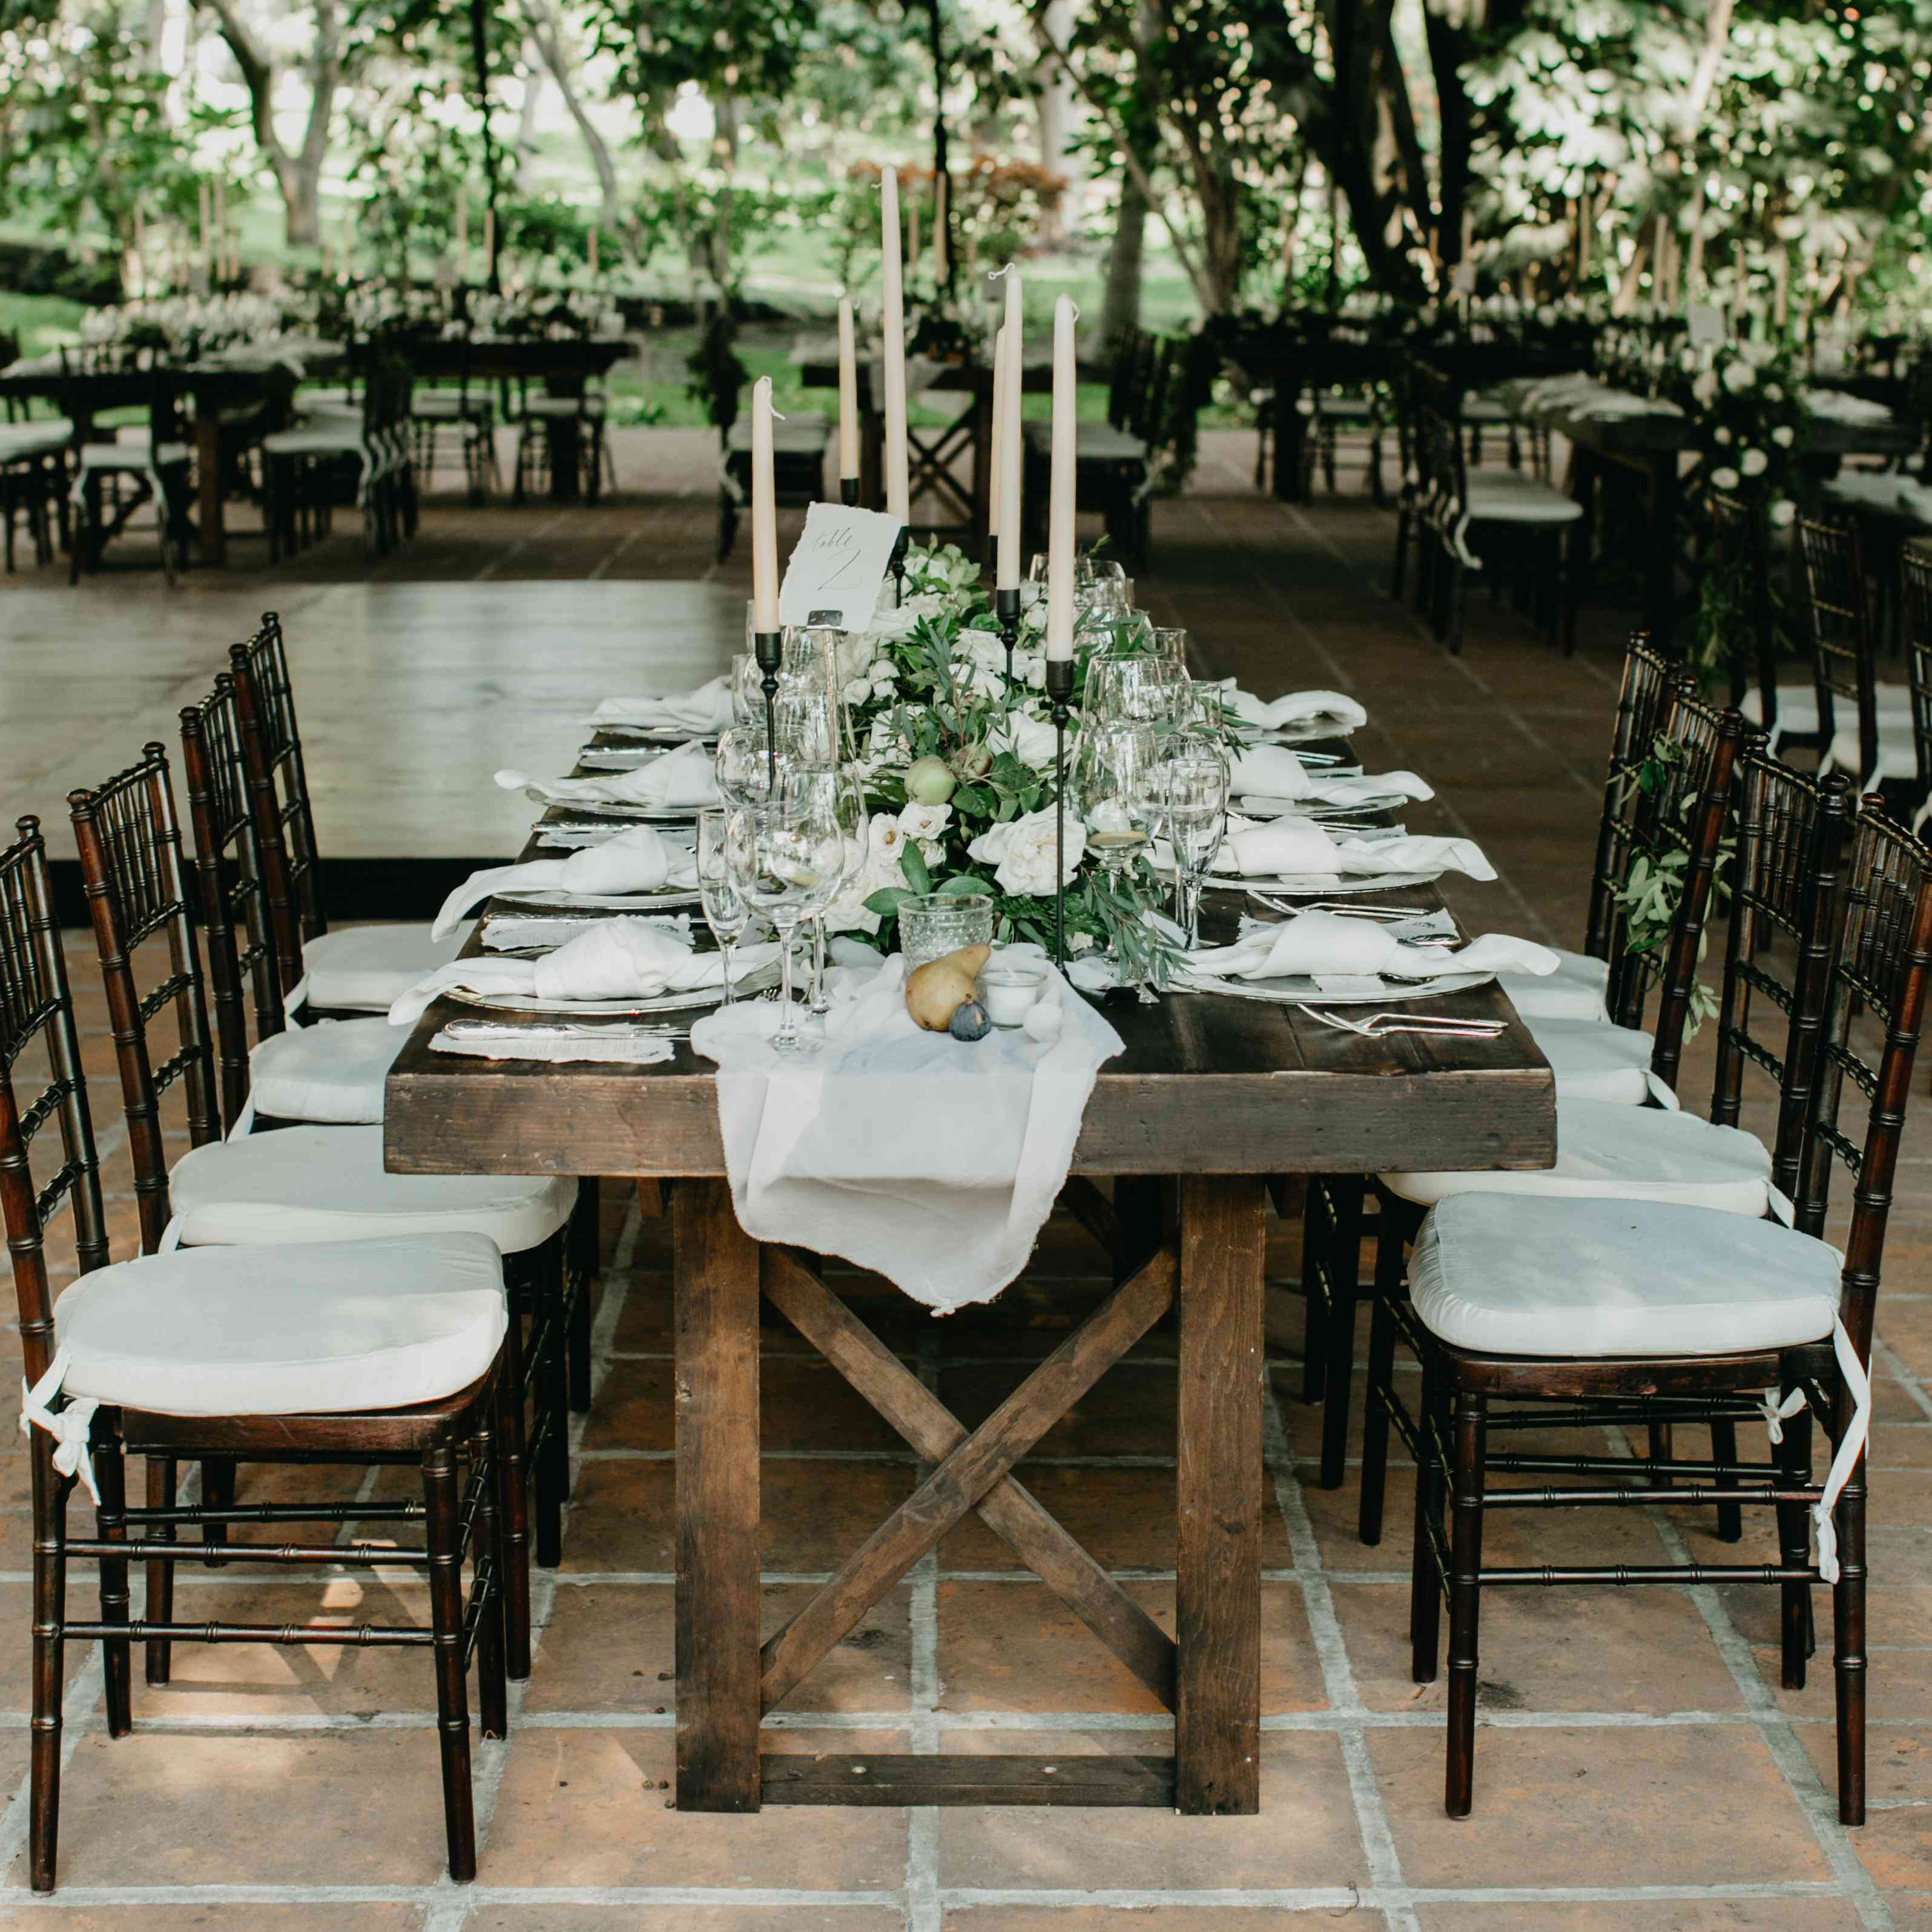 Boho Wedding Decor.Your Cheat Sheet To The Most Popular Wedding Styles From Classic To